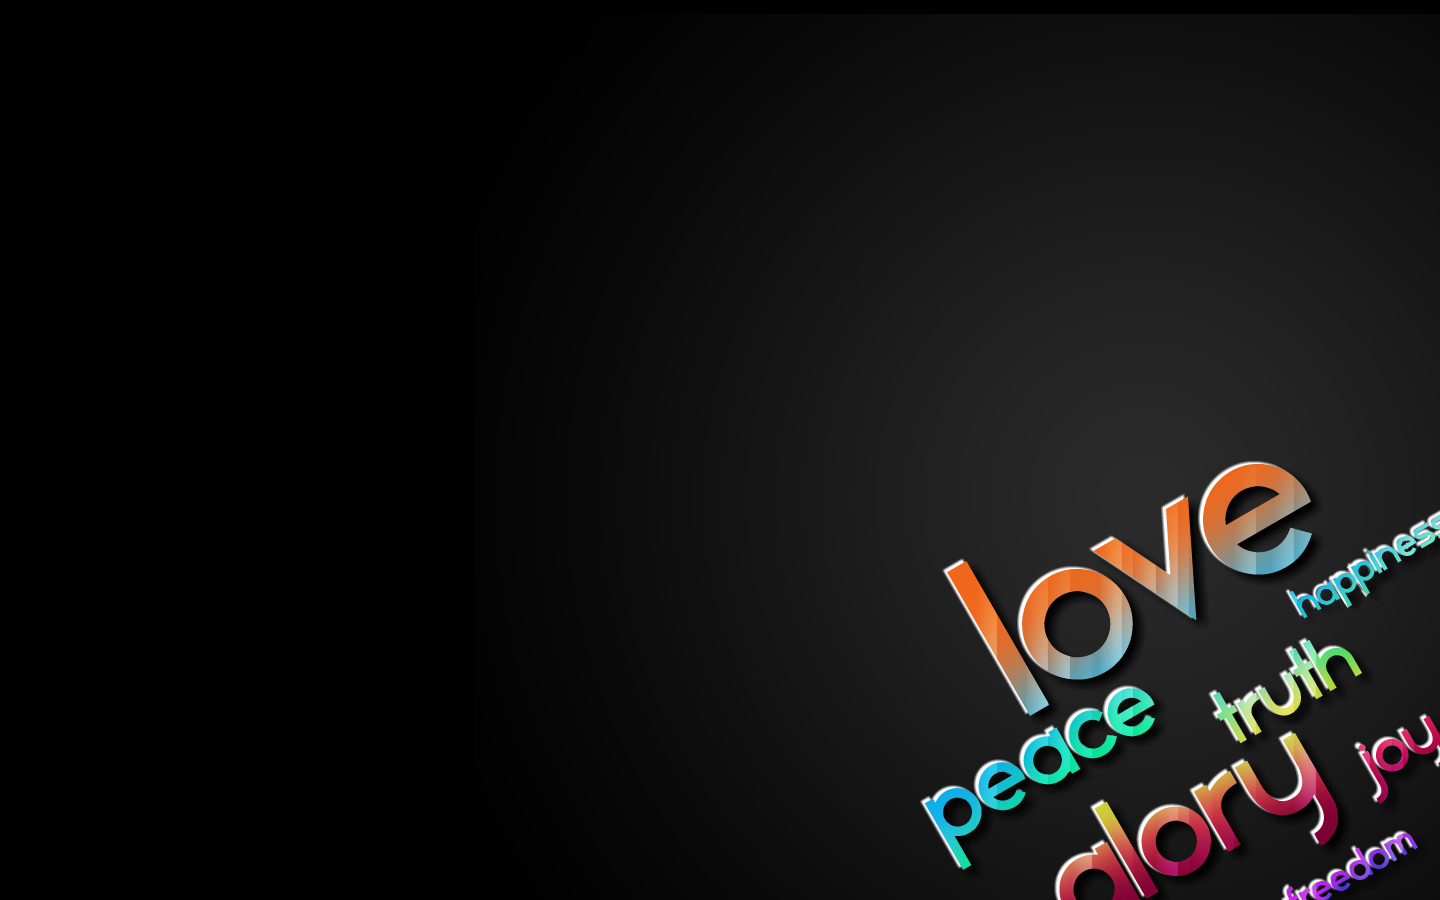 peace wallpaper wallpapers and backgrounds peace love wallpaper 1440x900